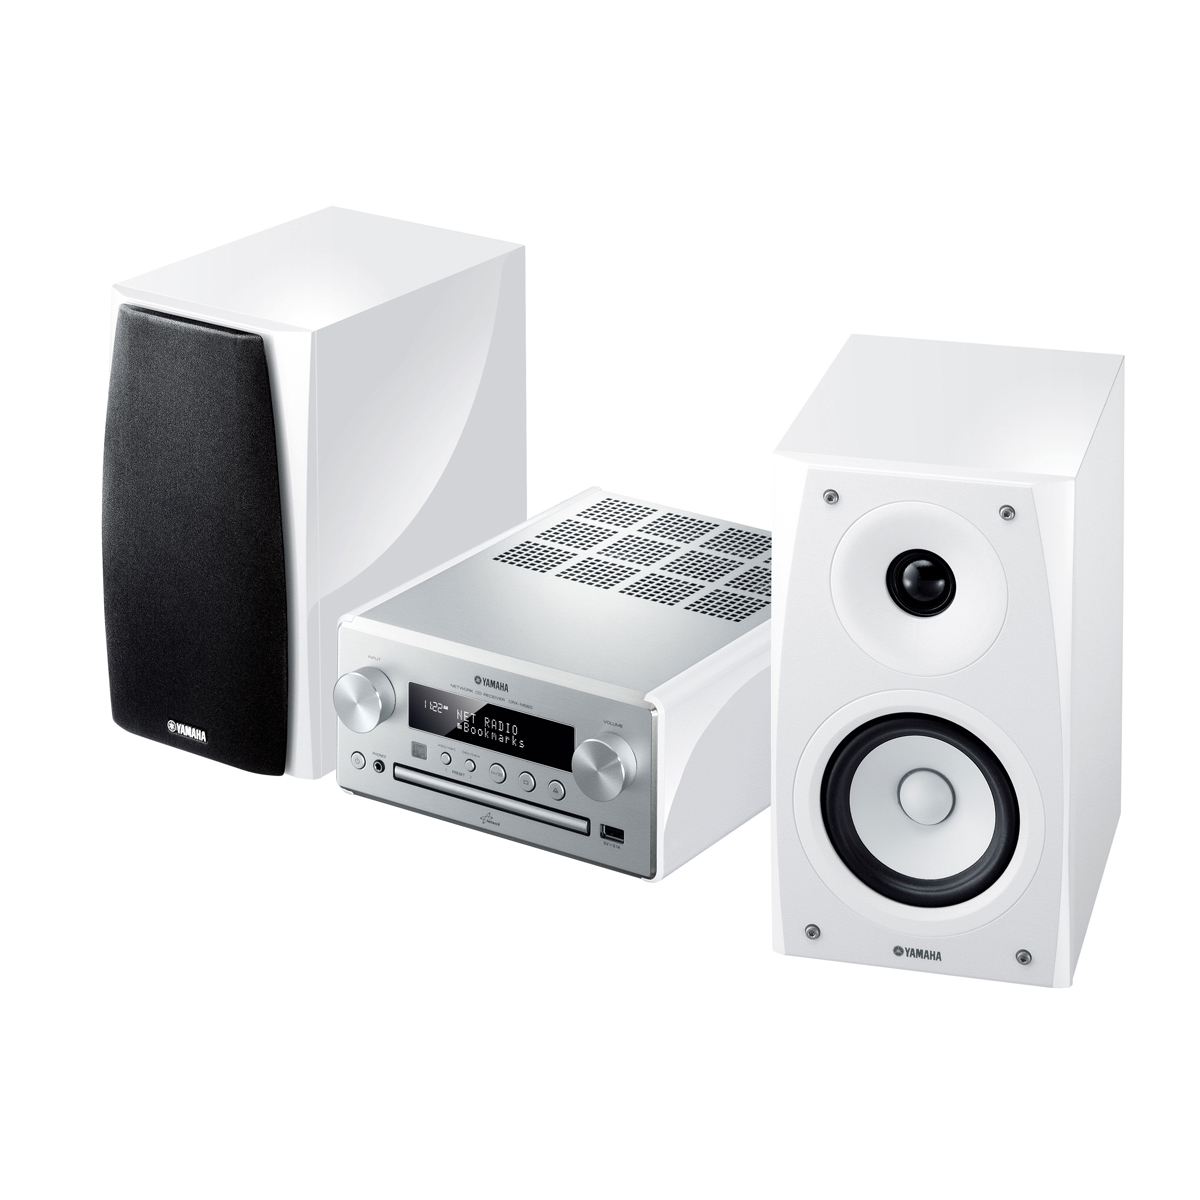 yamaha mcr n560 argent blanc cha ne hifi yamaha sur. Black Bedroom Furniture Sets. Home Design Ideas